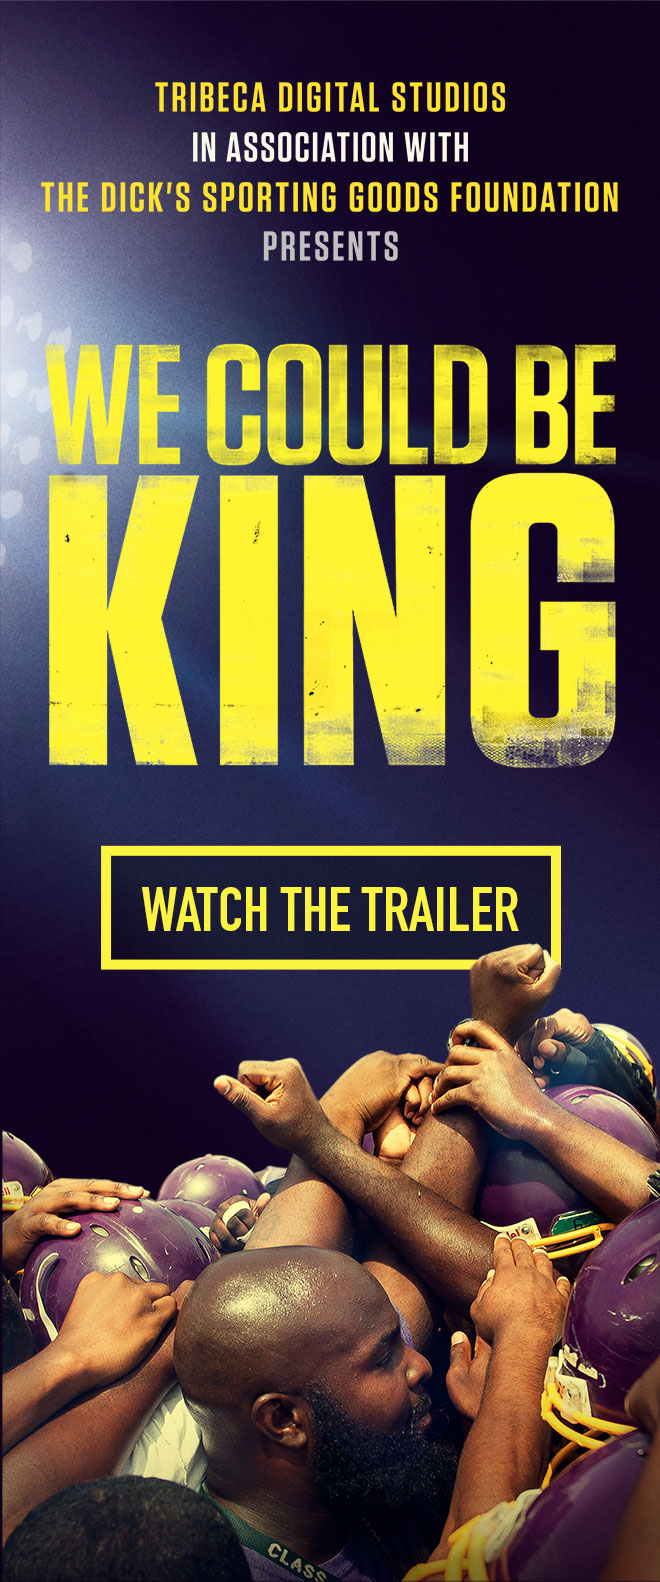 Tribeca Digital Studios in association with The Dick's Sporting Goods Foundation Presents: We Could Be King